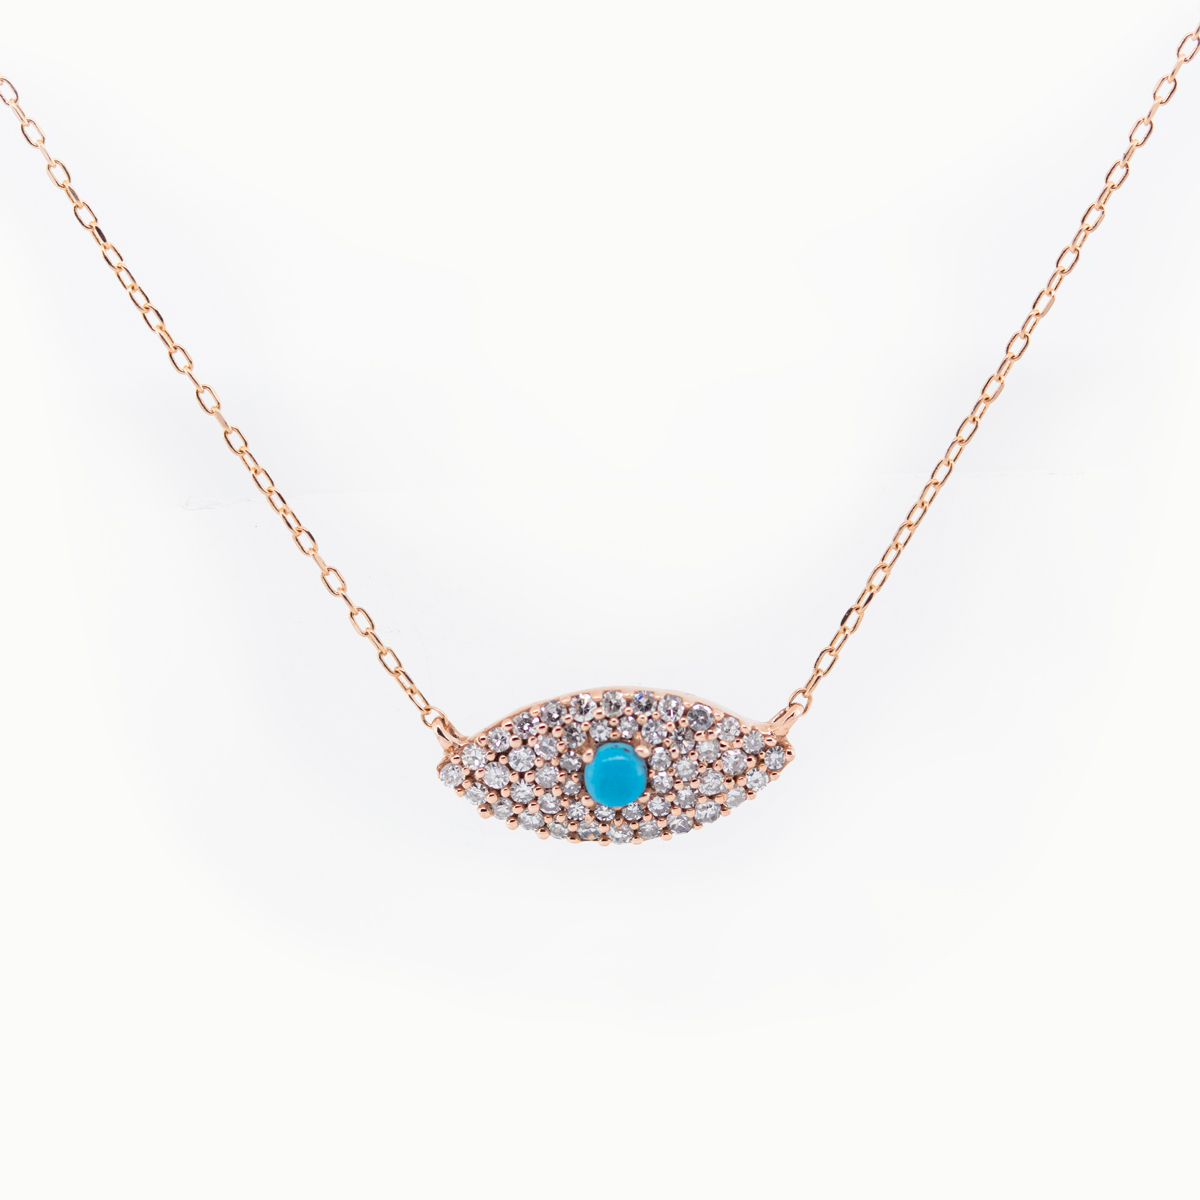 Petite Diamond and Turquoise Evil Eye Necklace